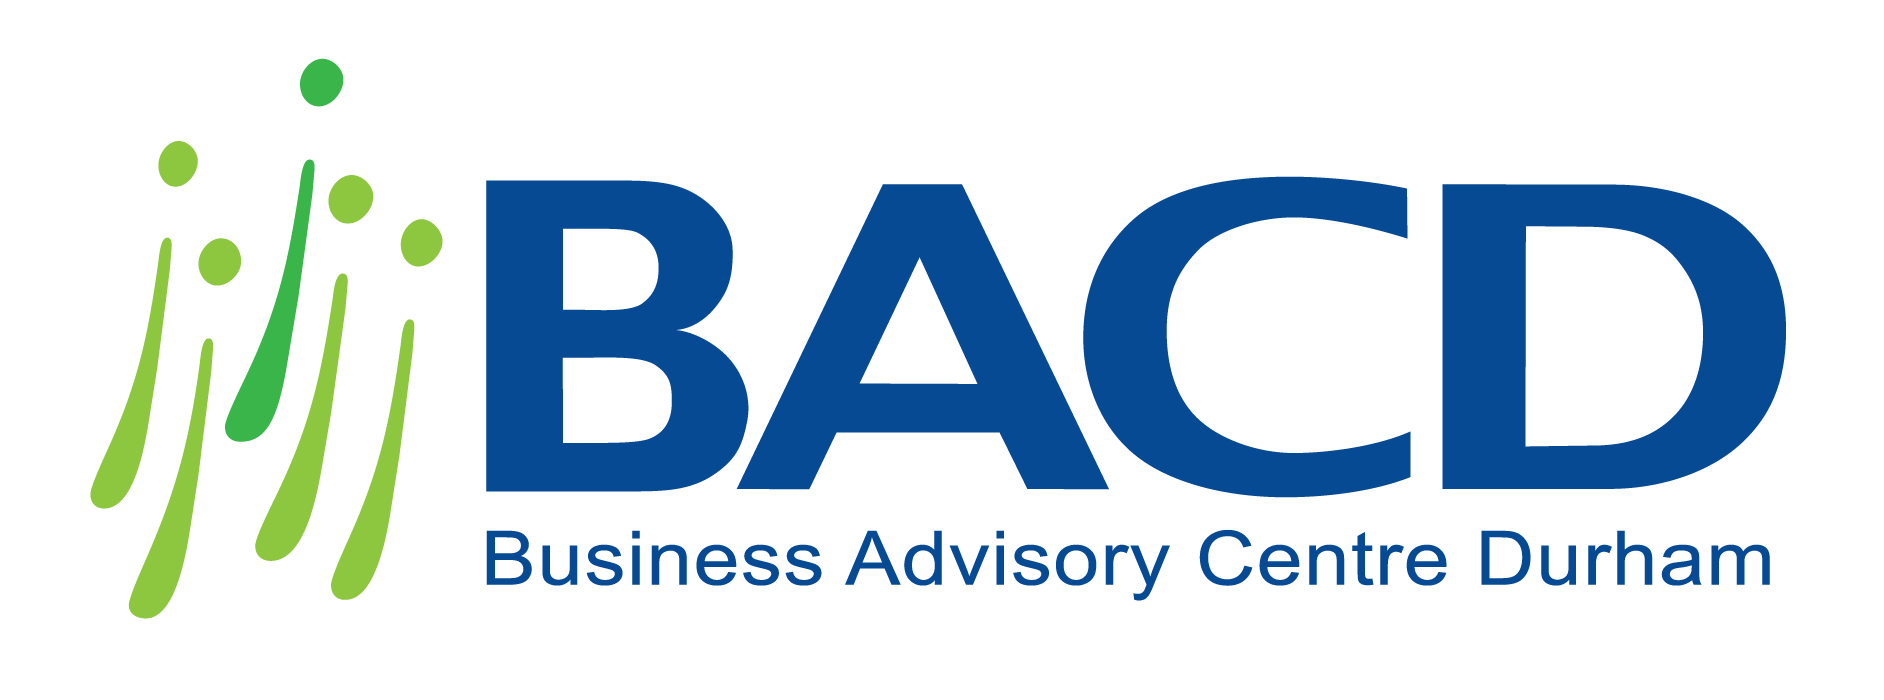 Business Advisory Centre Durham